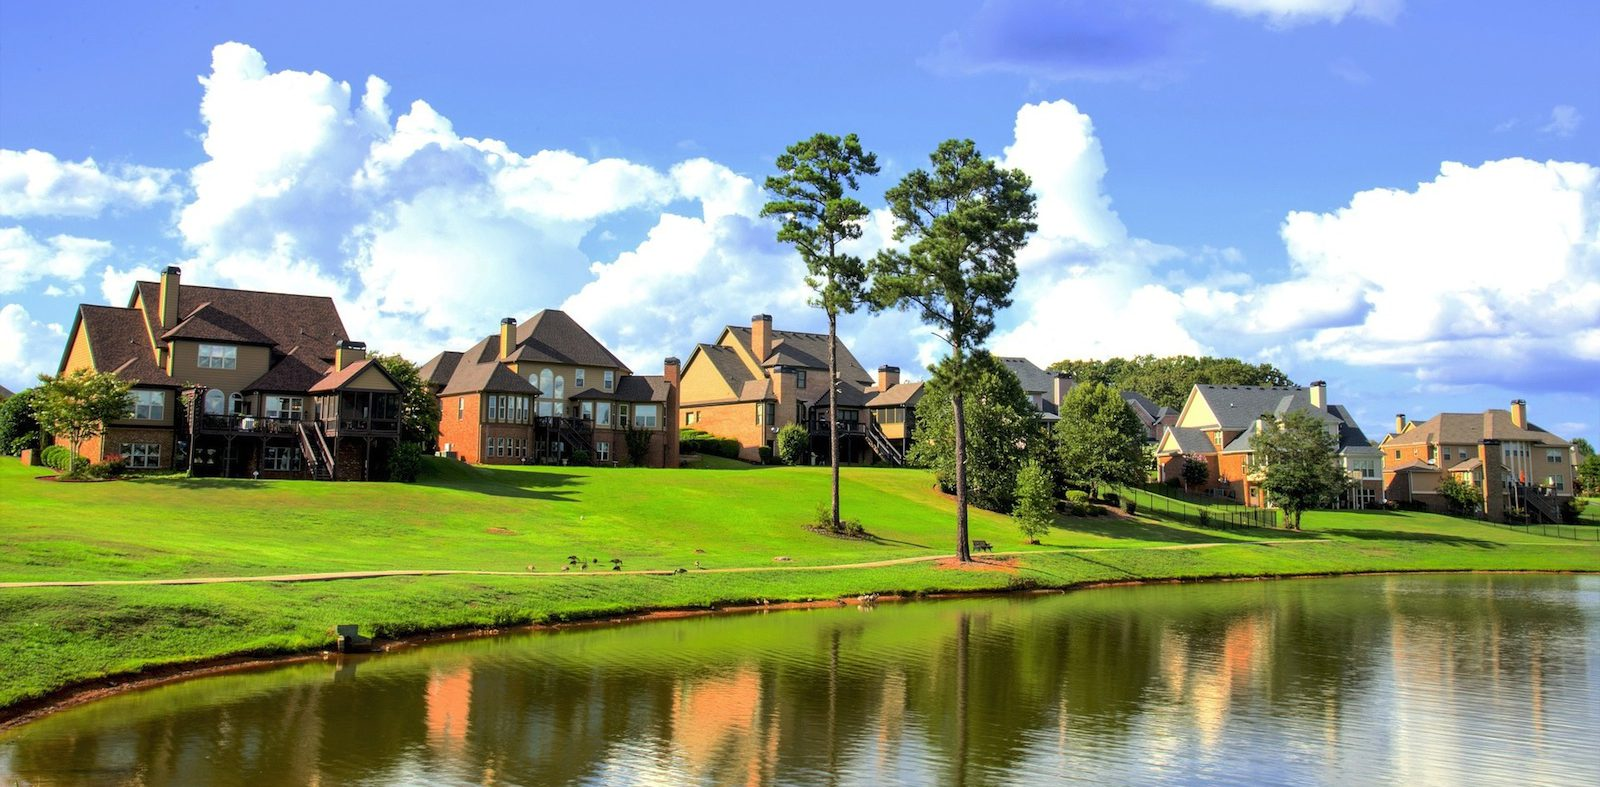 5 tips for finding the right neighborhood